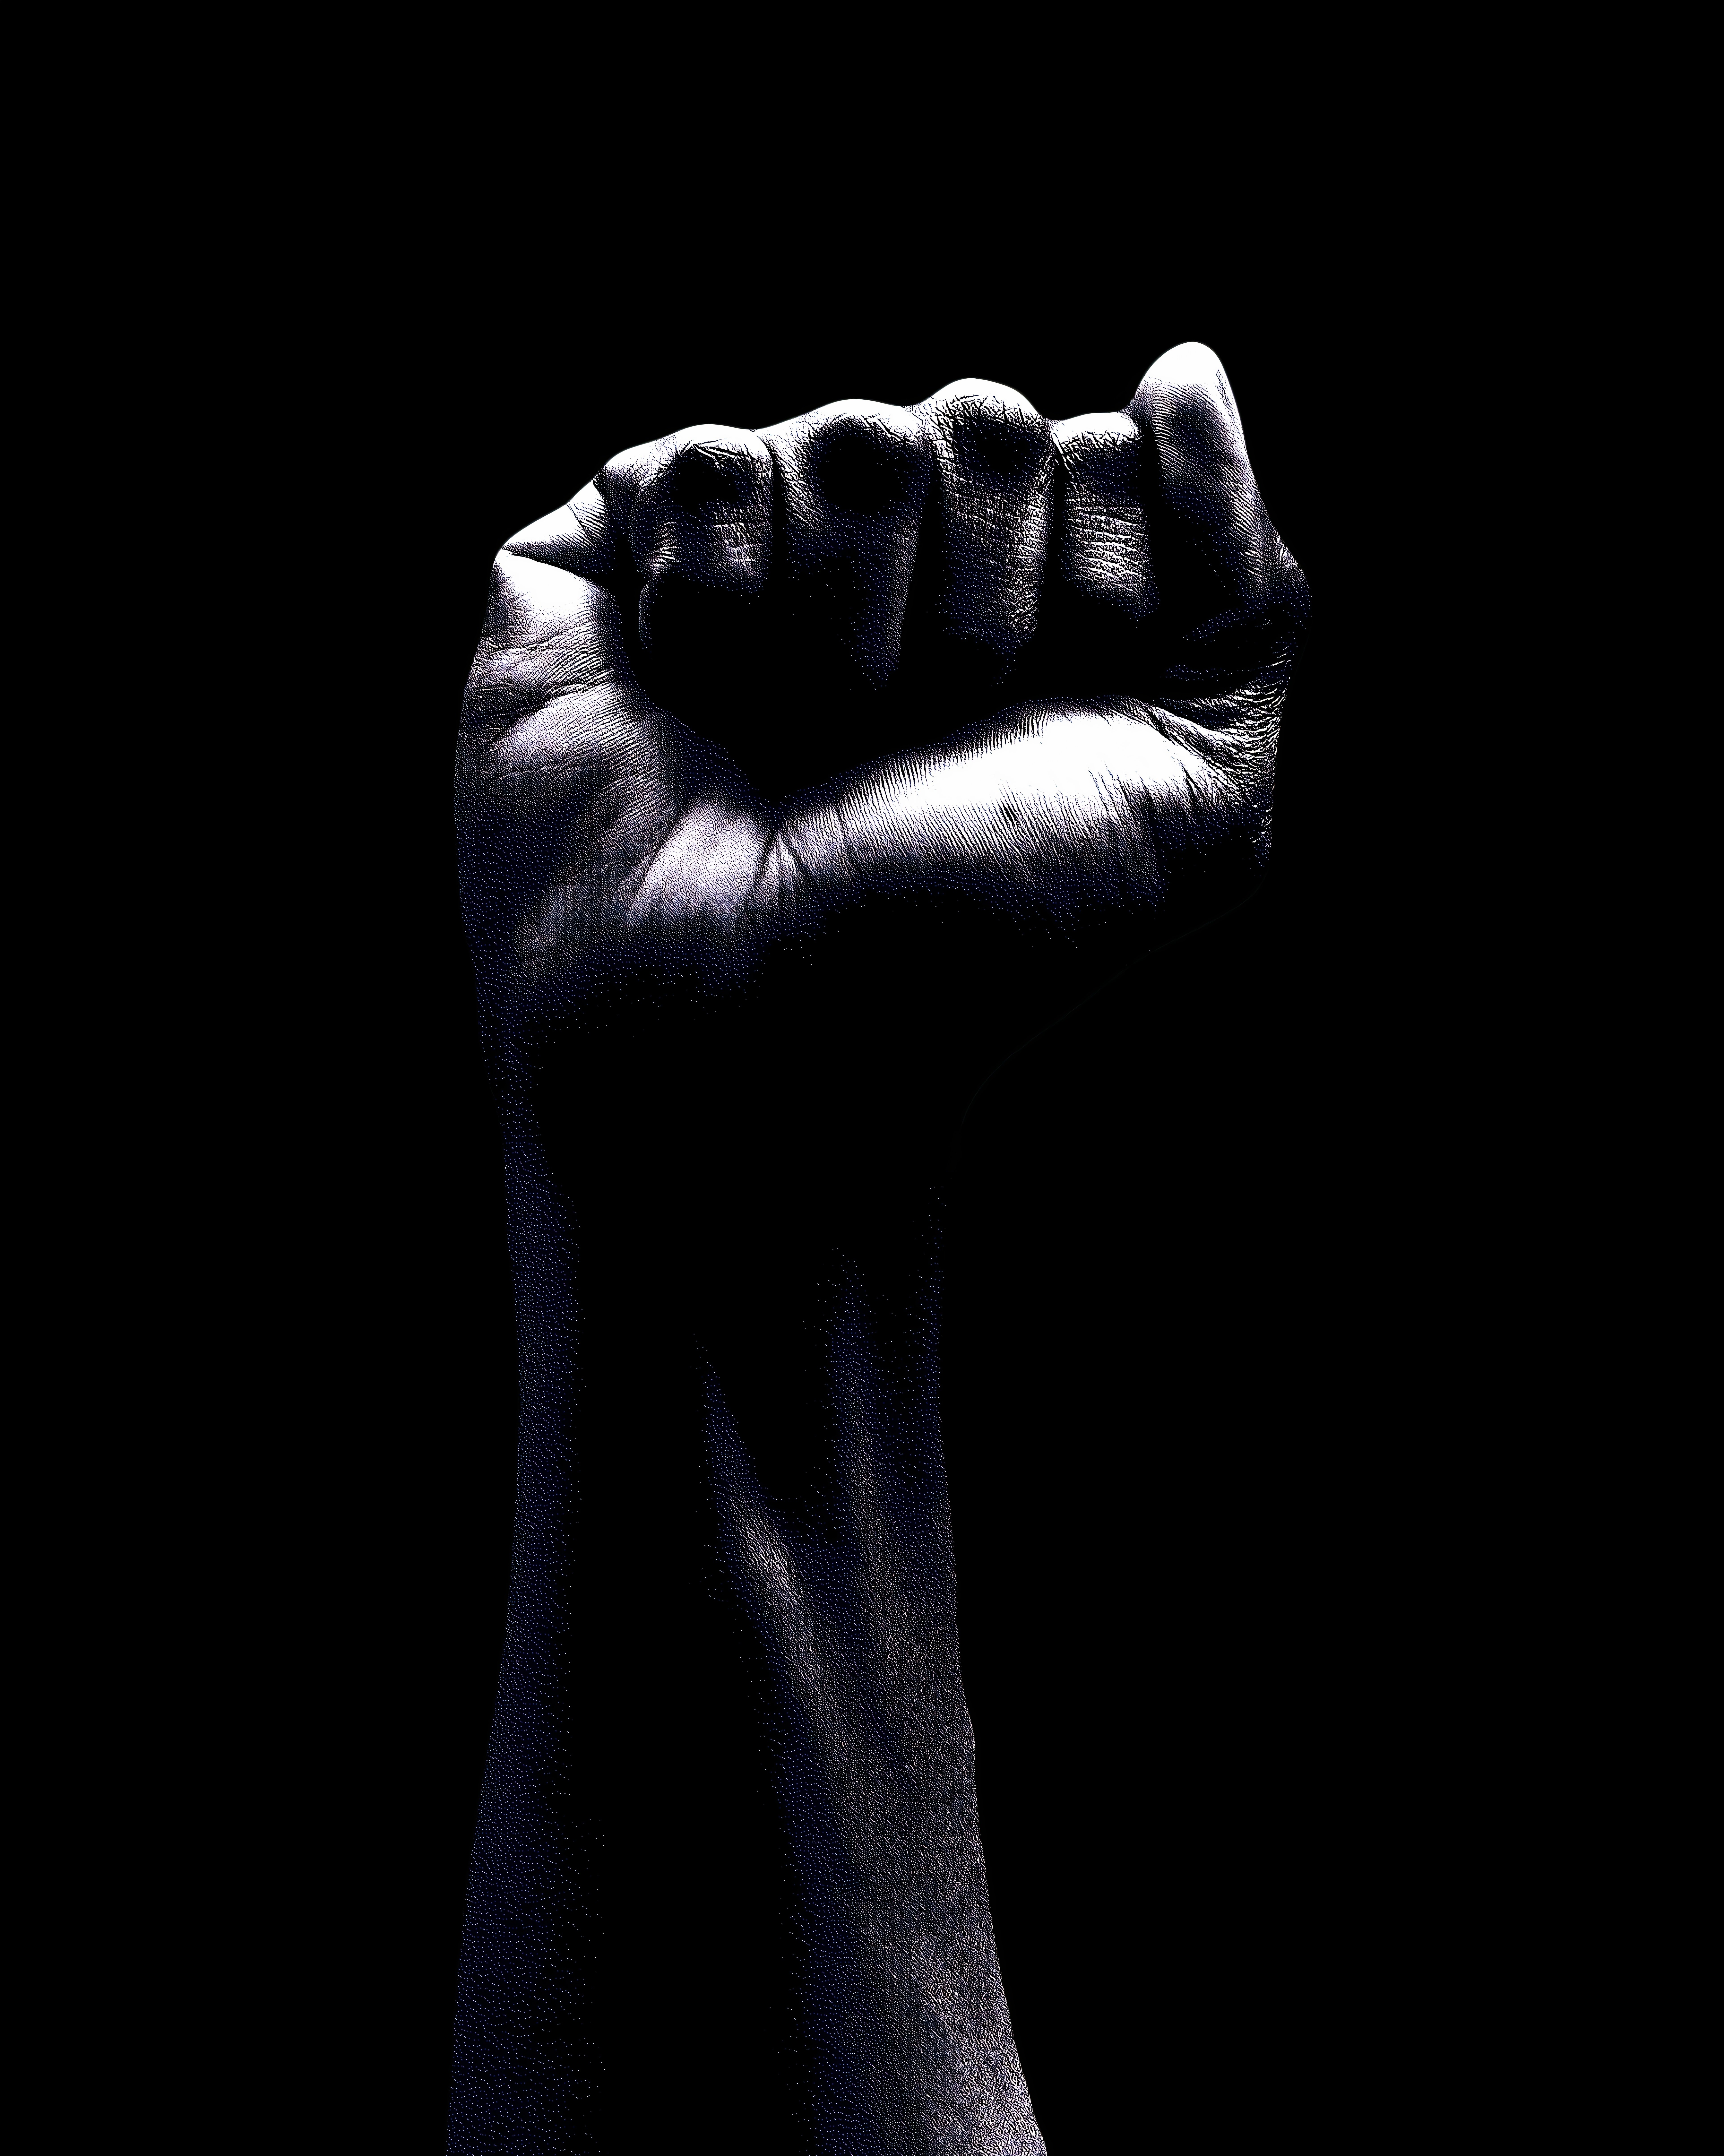 Victorious fist in the air | Unsplash